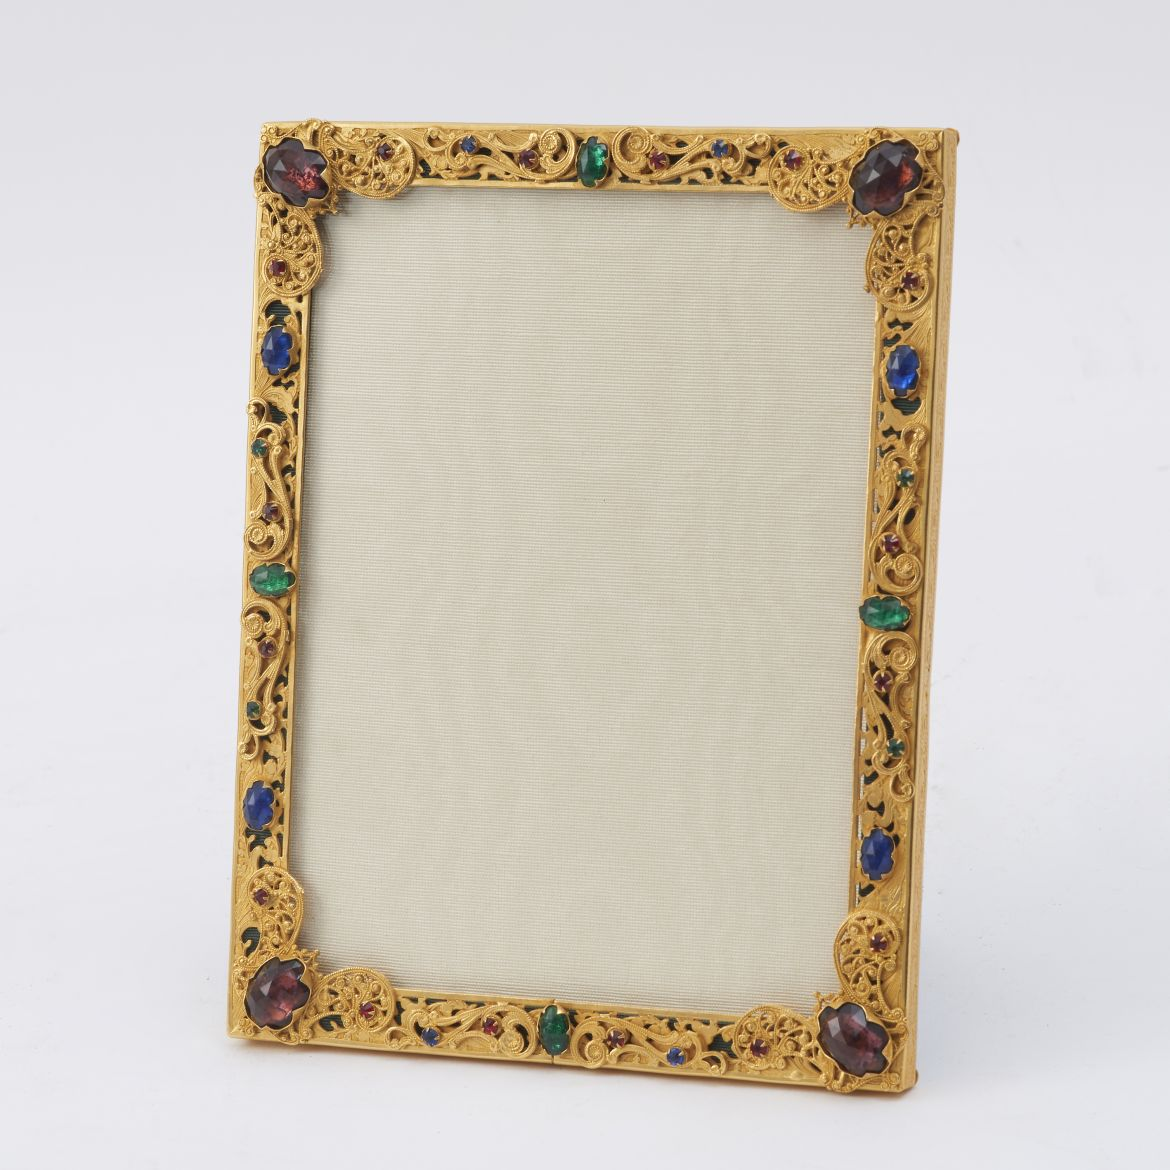 French Frame With Filigree Decoration